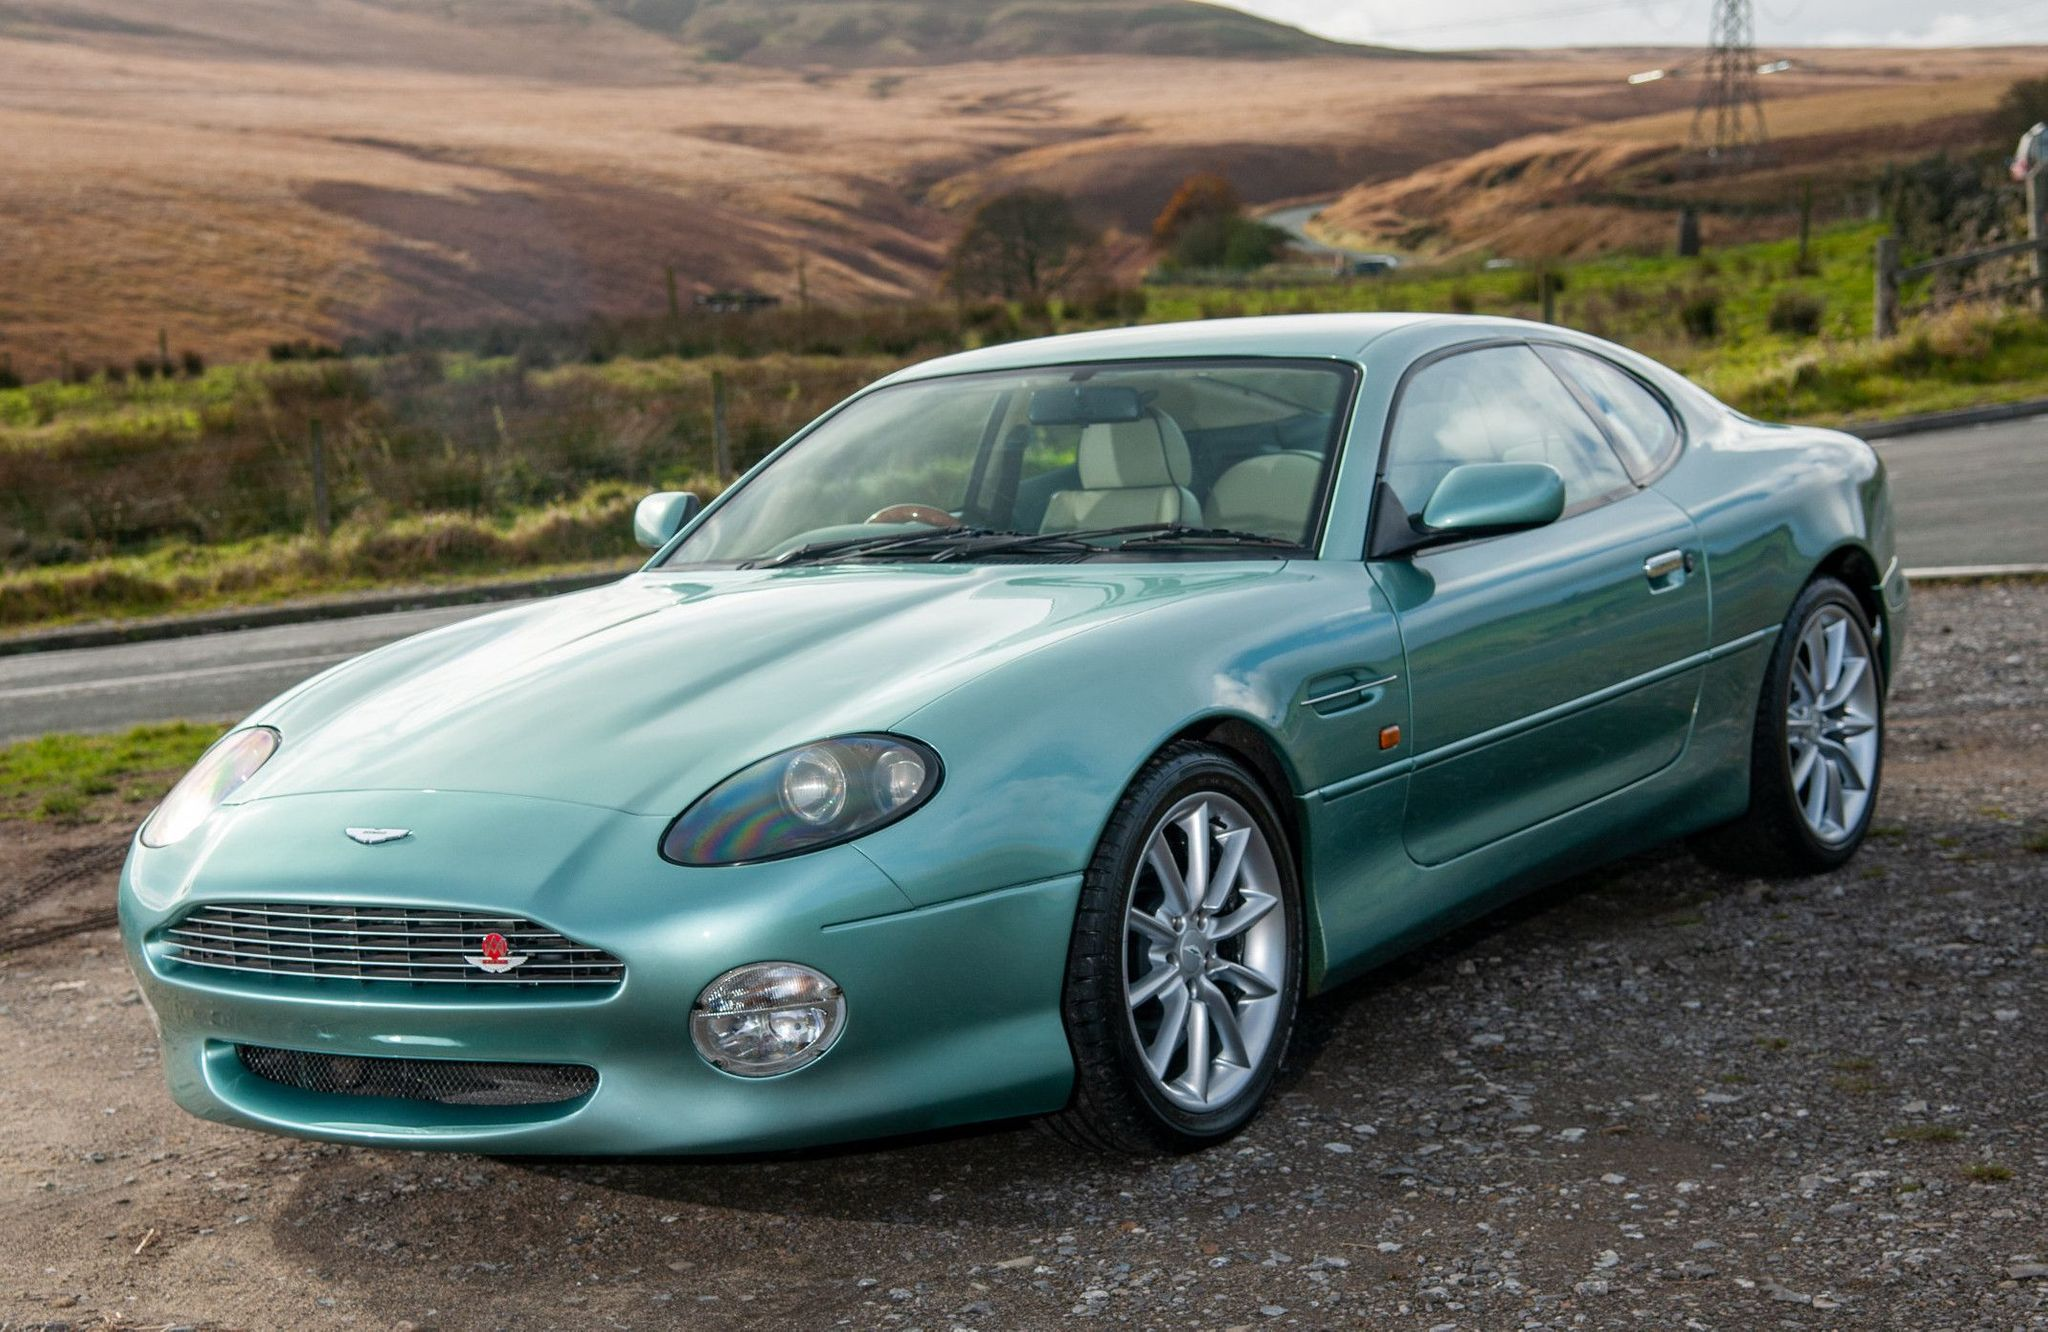 Aston Martin Db7 Vantage Used Cars For Sale Autotrader Uk